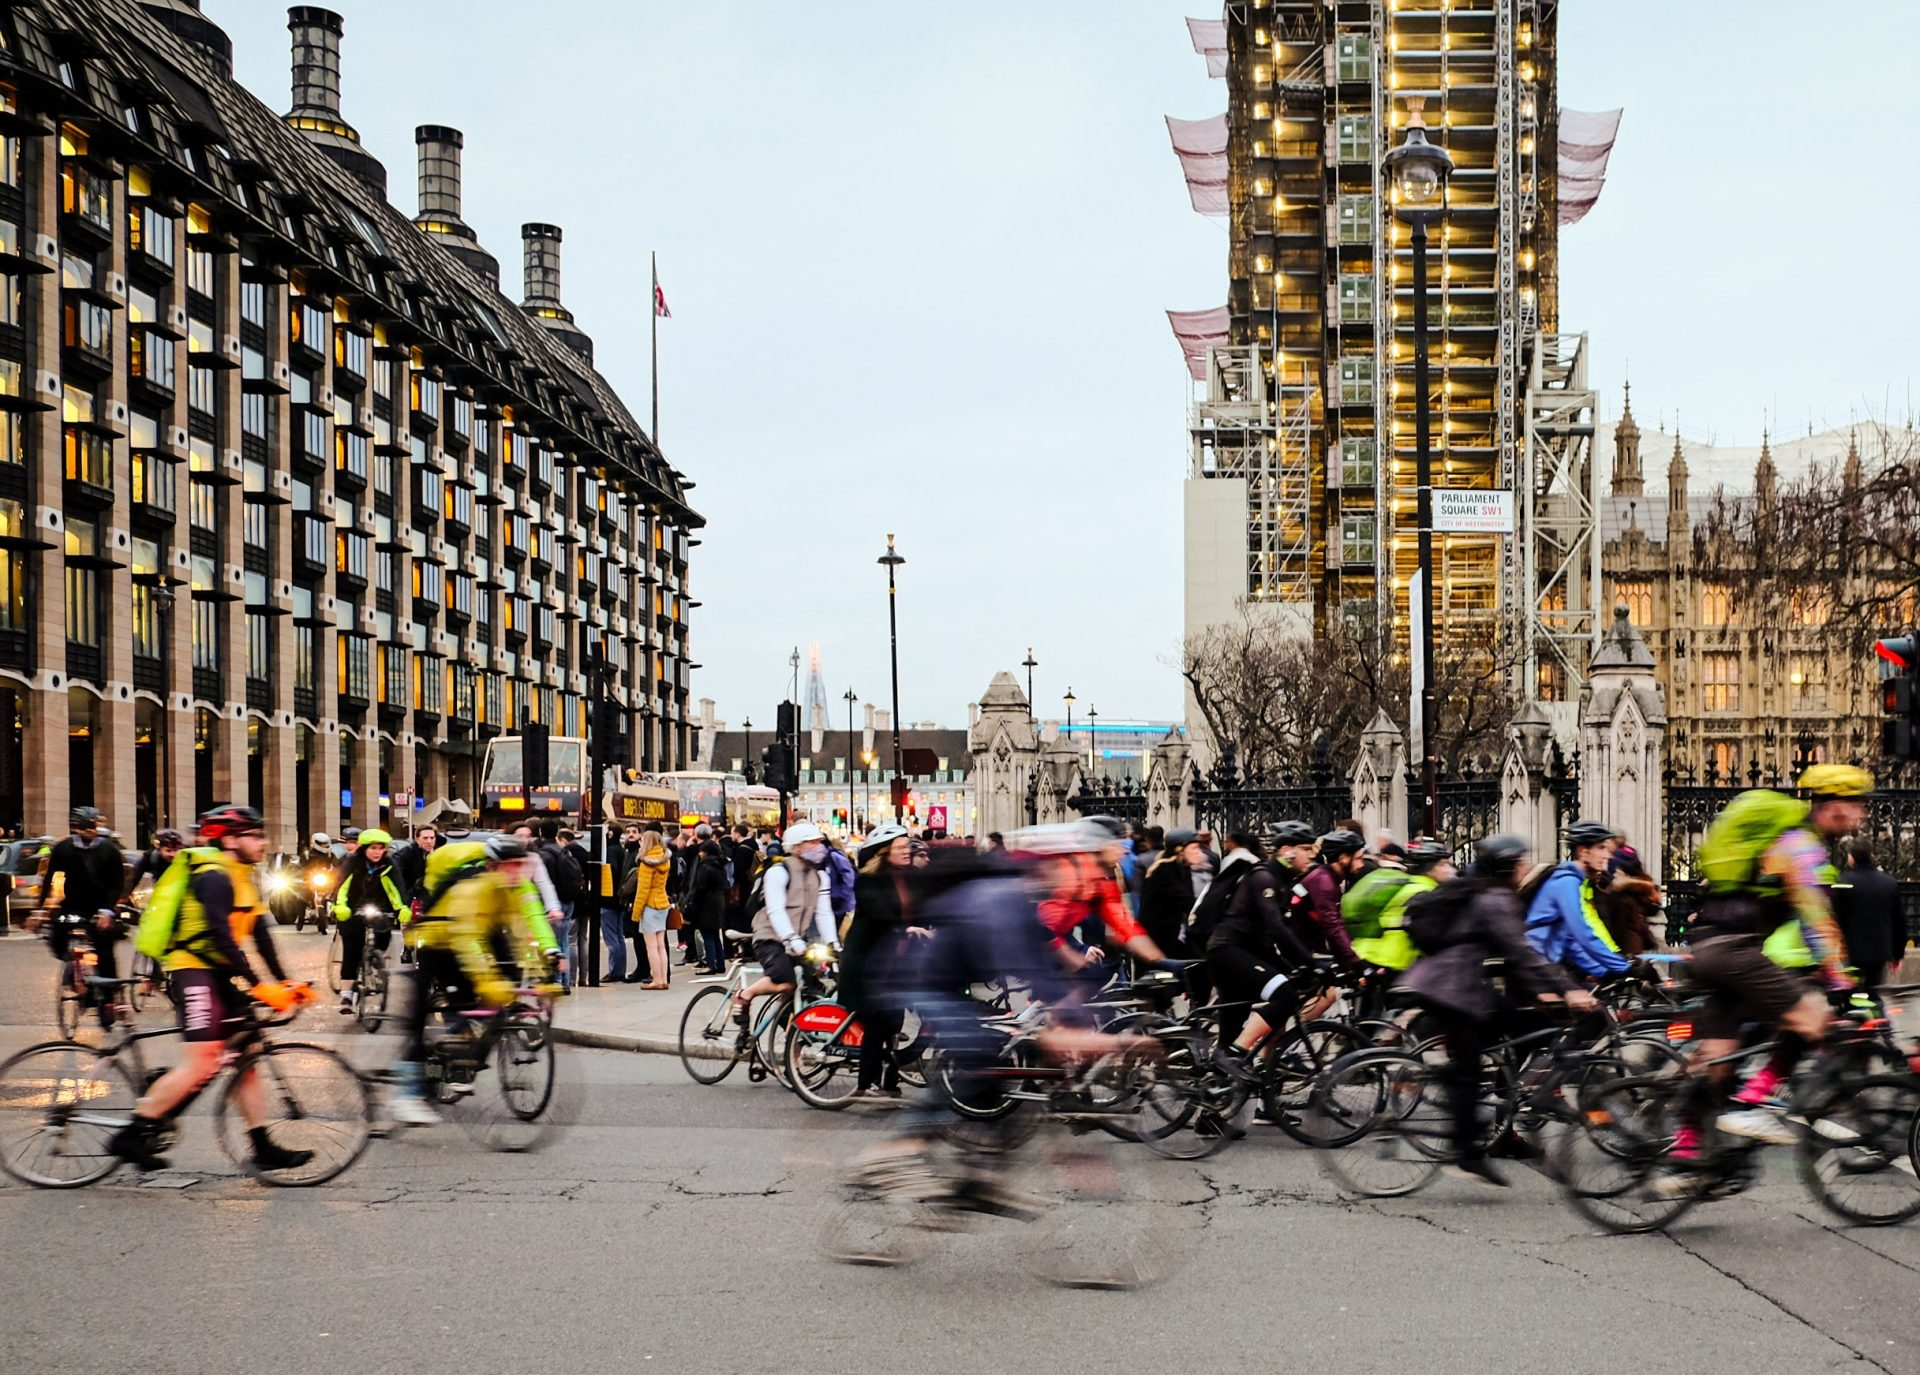 The All-Party Parliamentary Group for Cycling & Walking appoints Fusion Media to support its work powering change in Westminster and beyond